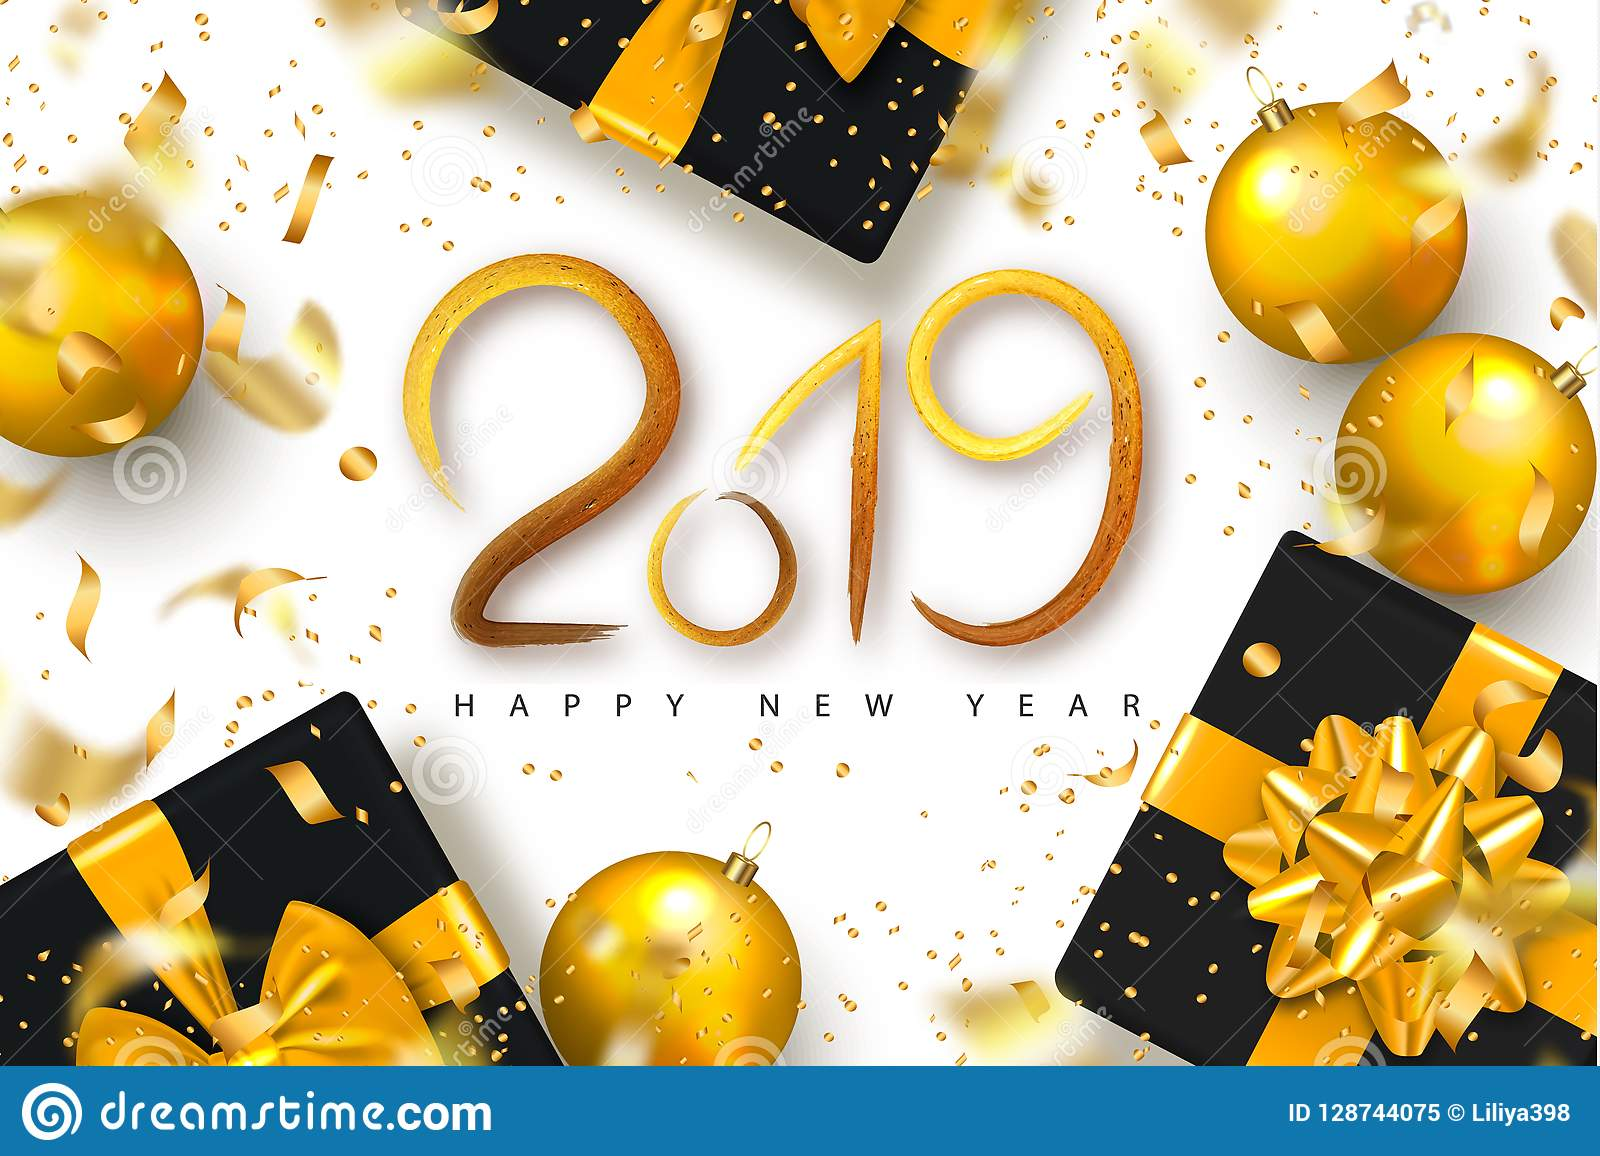 2019 happy new year background for holiday greeting card invitation party flyer poster